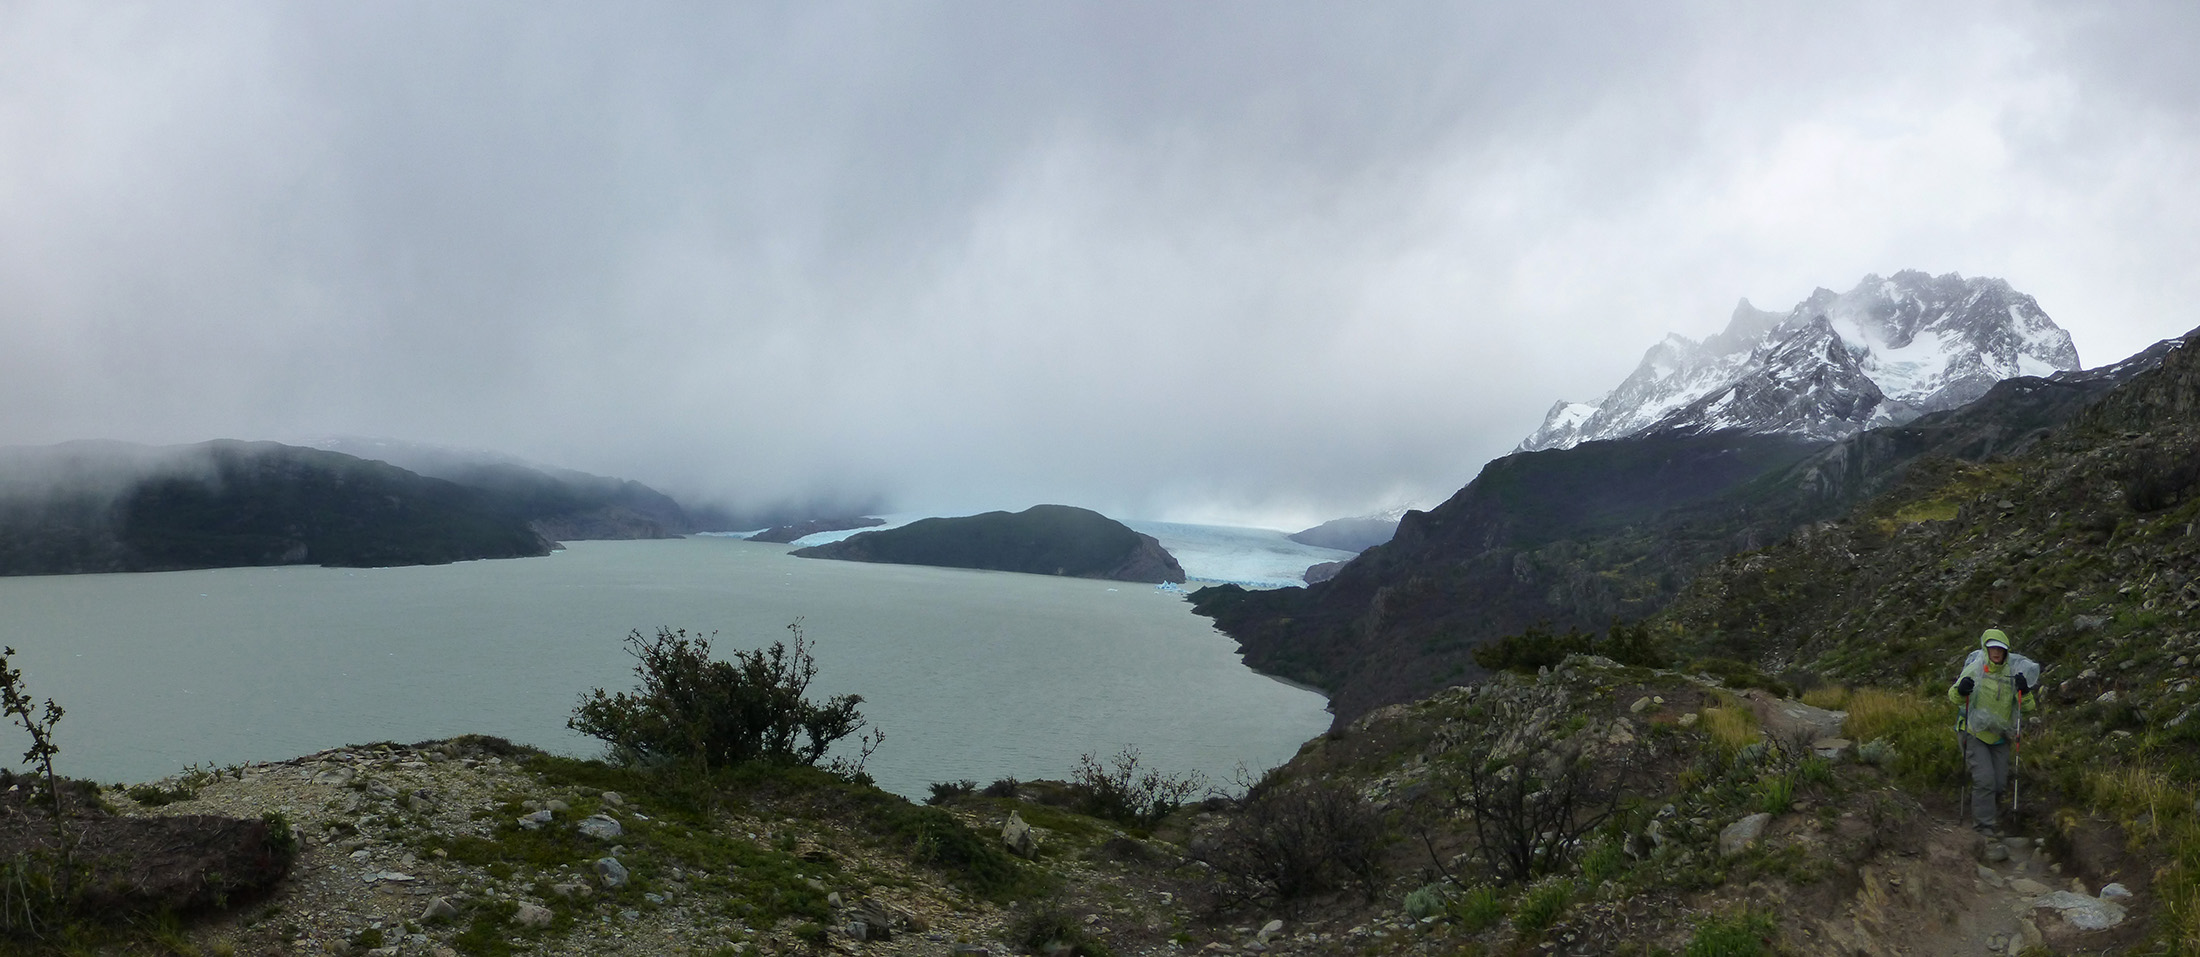 Experiencing the Patagonian winds.